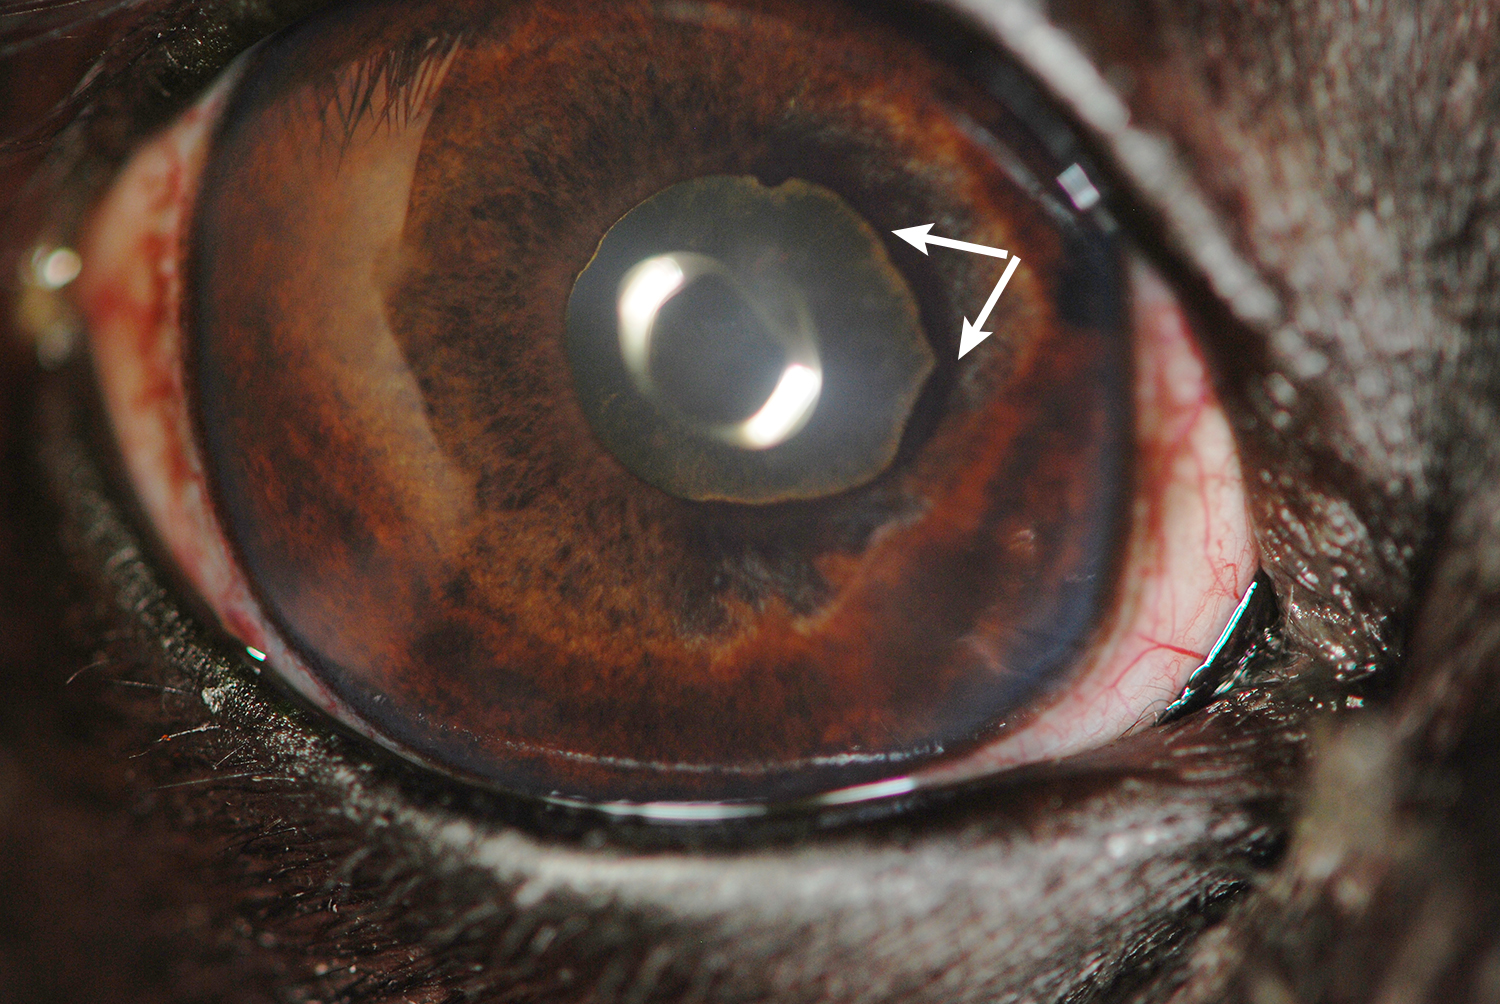 Corneal edema and episcleral injection have improved. Dyscoria and posterior synechiae are still present (arrows).